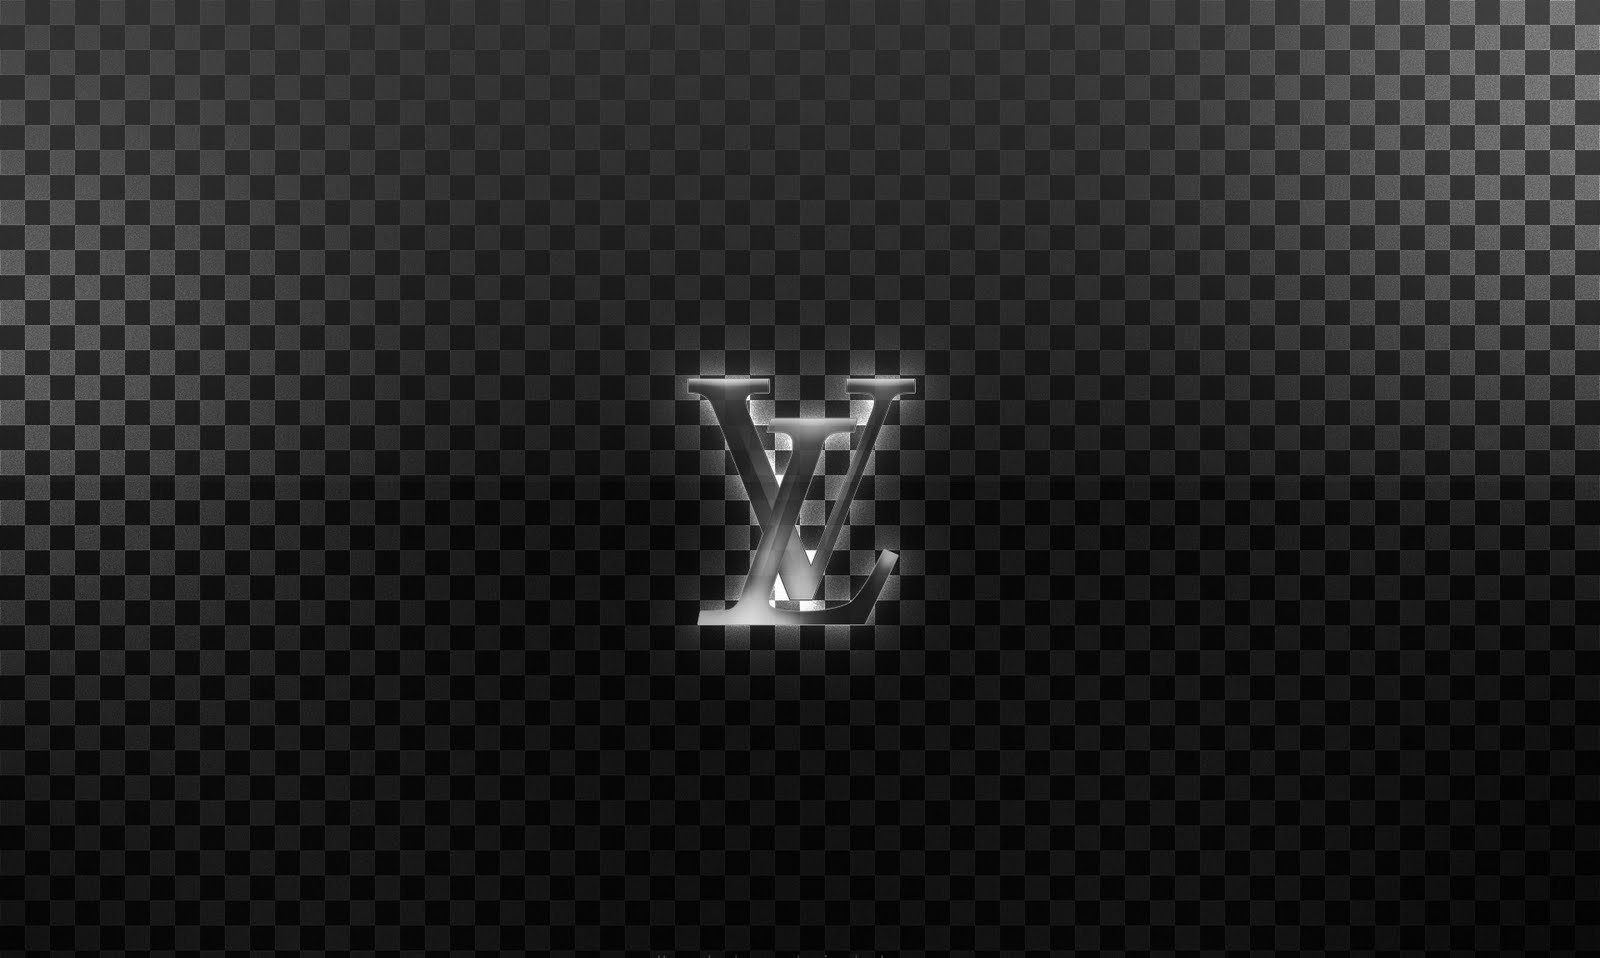 louis vuitton louis vuitton wallpaper for iphone 4 desktop wallpapers 1600x958